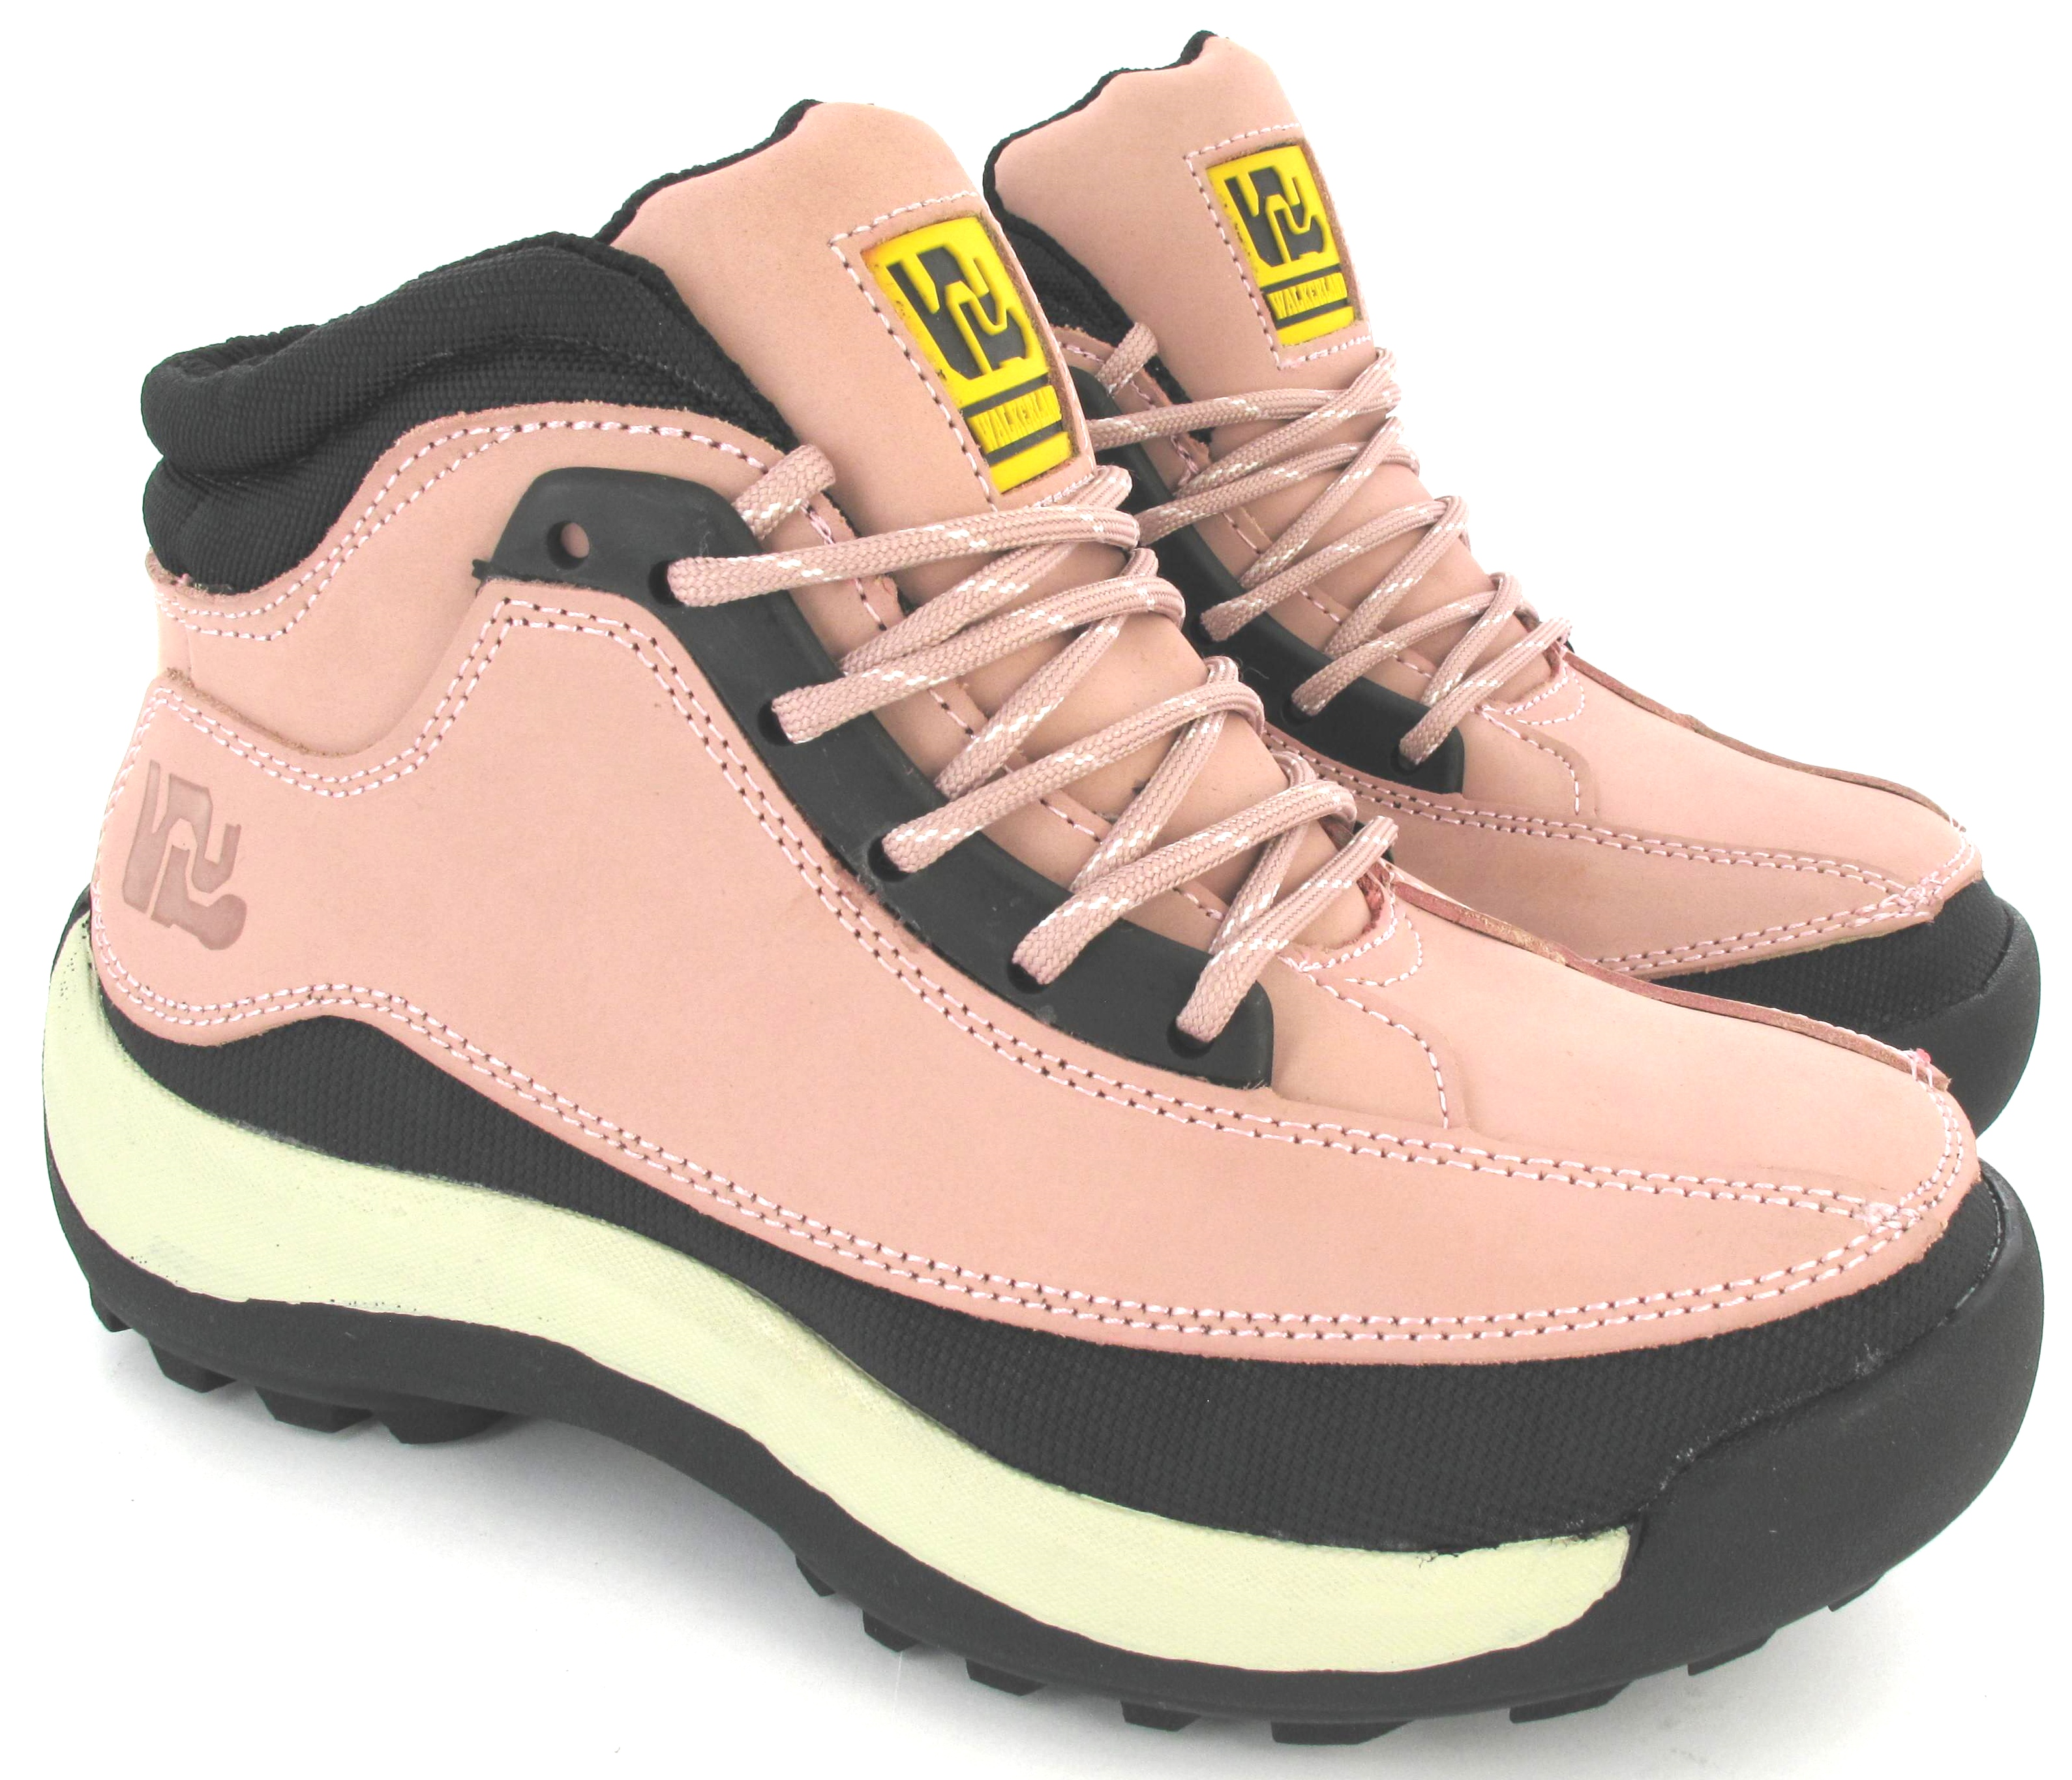 Safety Shoes For Women Car Interior Design